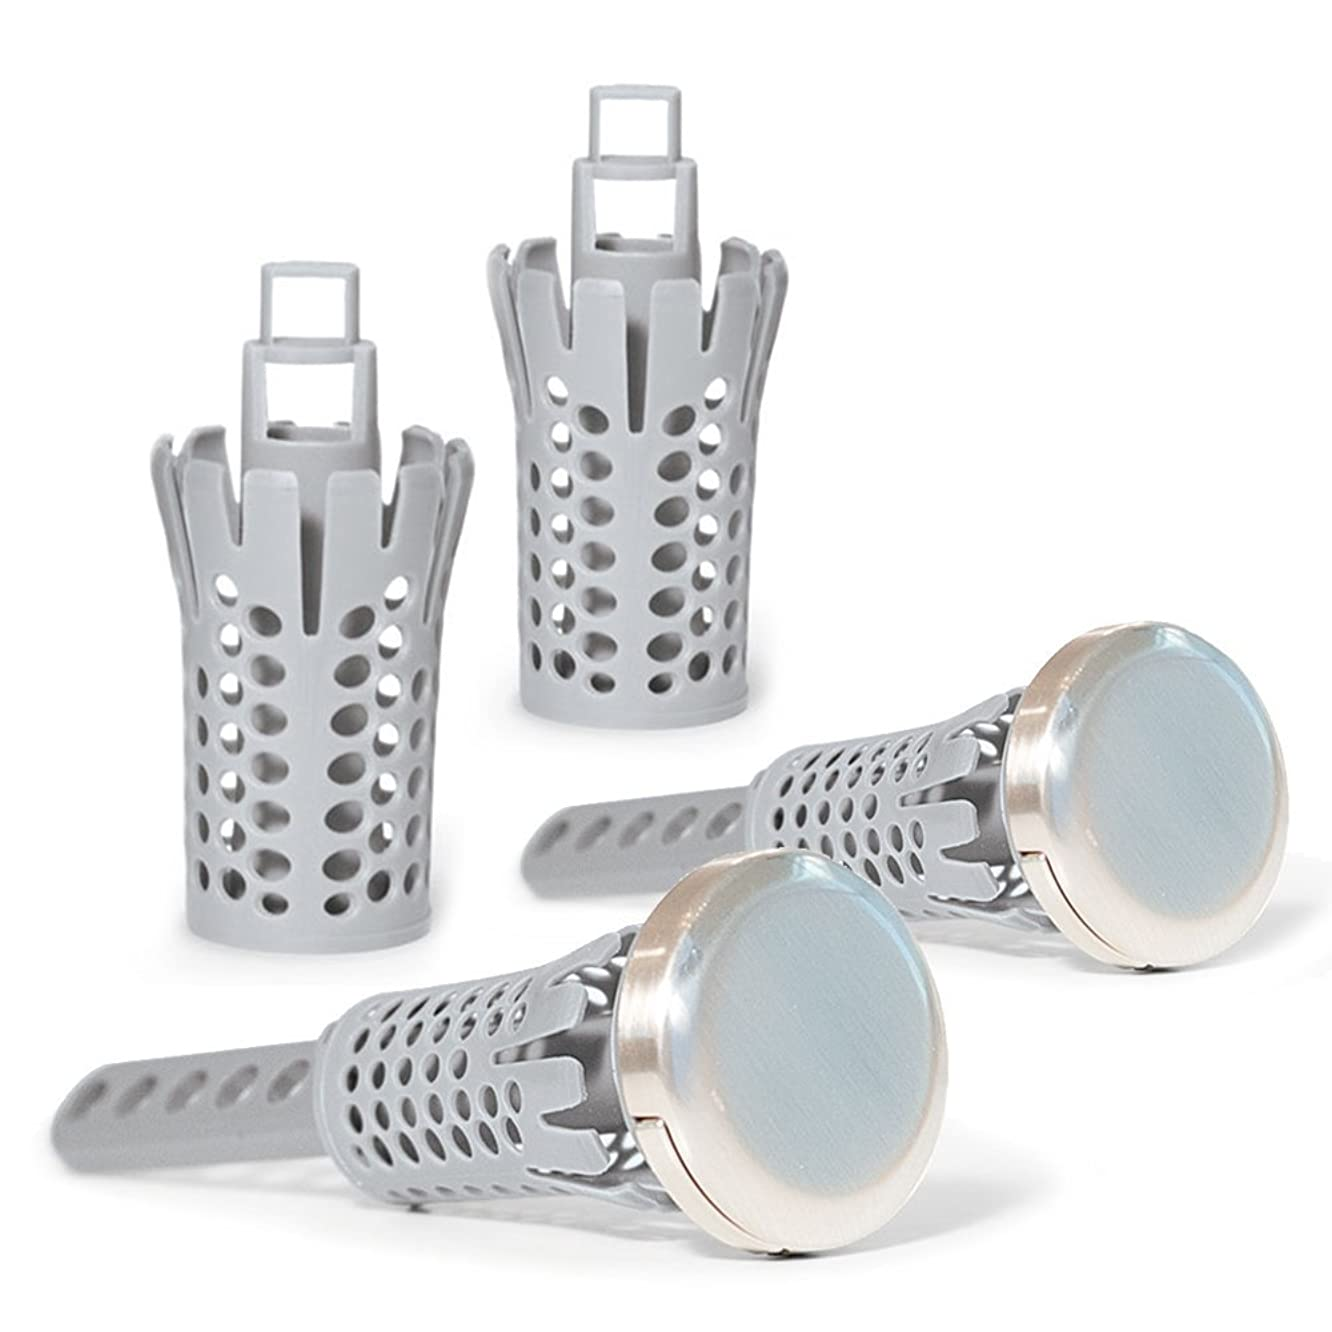 Drain Strain Deluxe Sink Hair Catcher Value Pack | 2 Clog Free Pop-Up Stoppers with 2 Extra Hair Catcher Baskets | Brushed Nickel | Fits Most 1.25